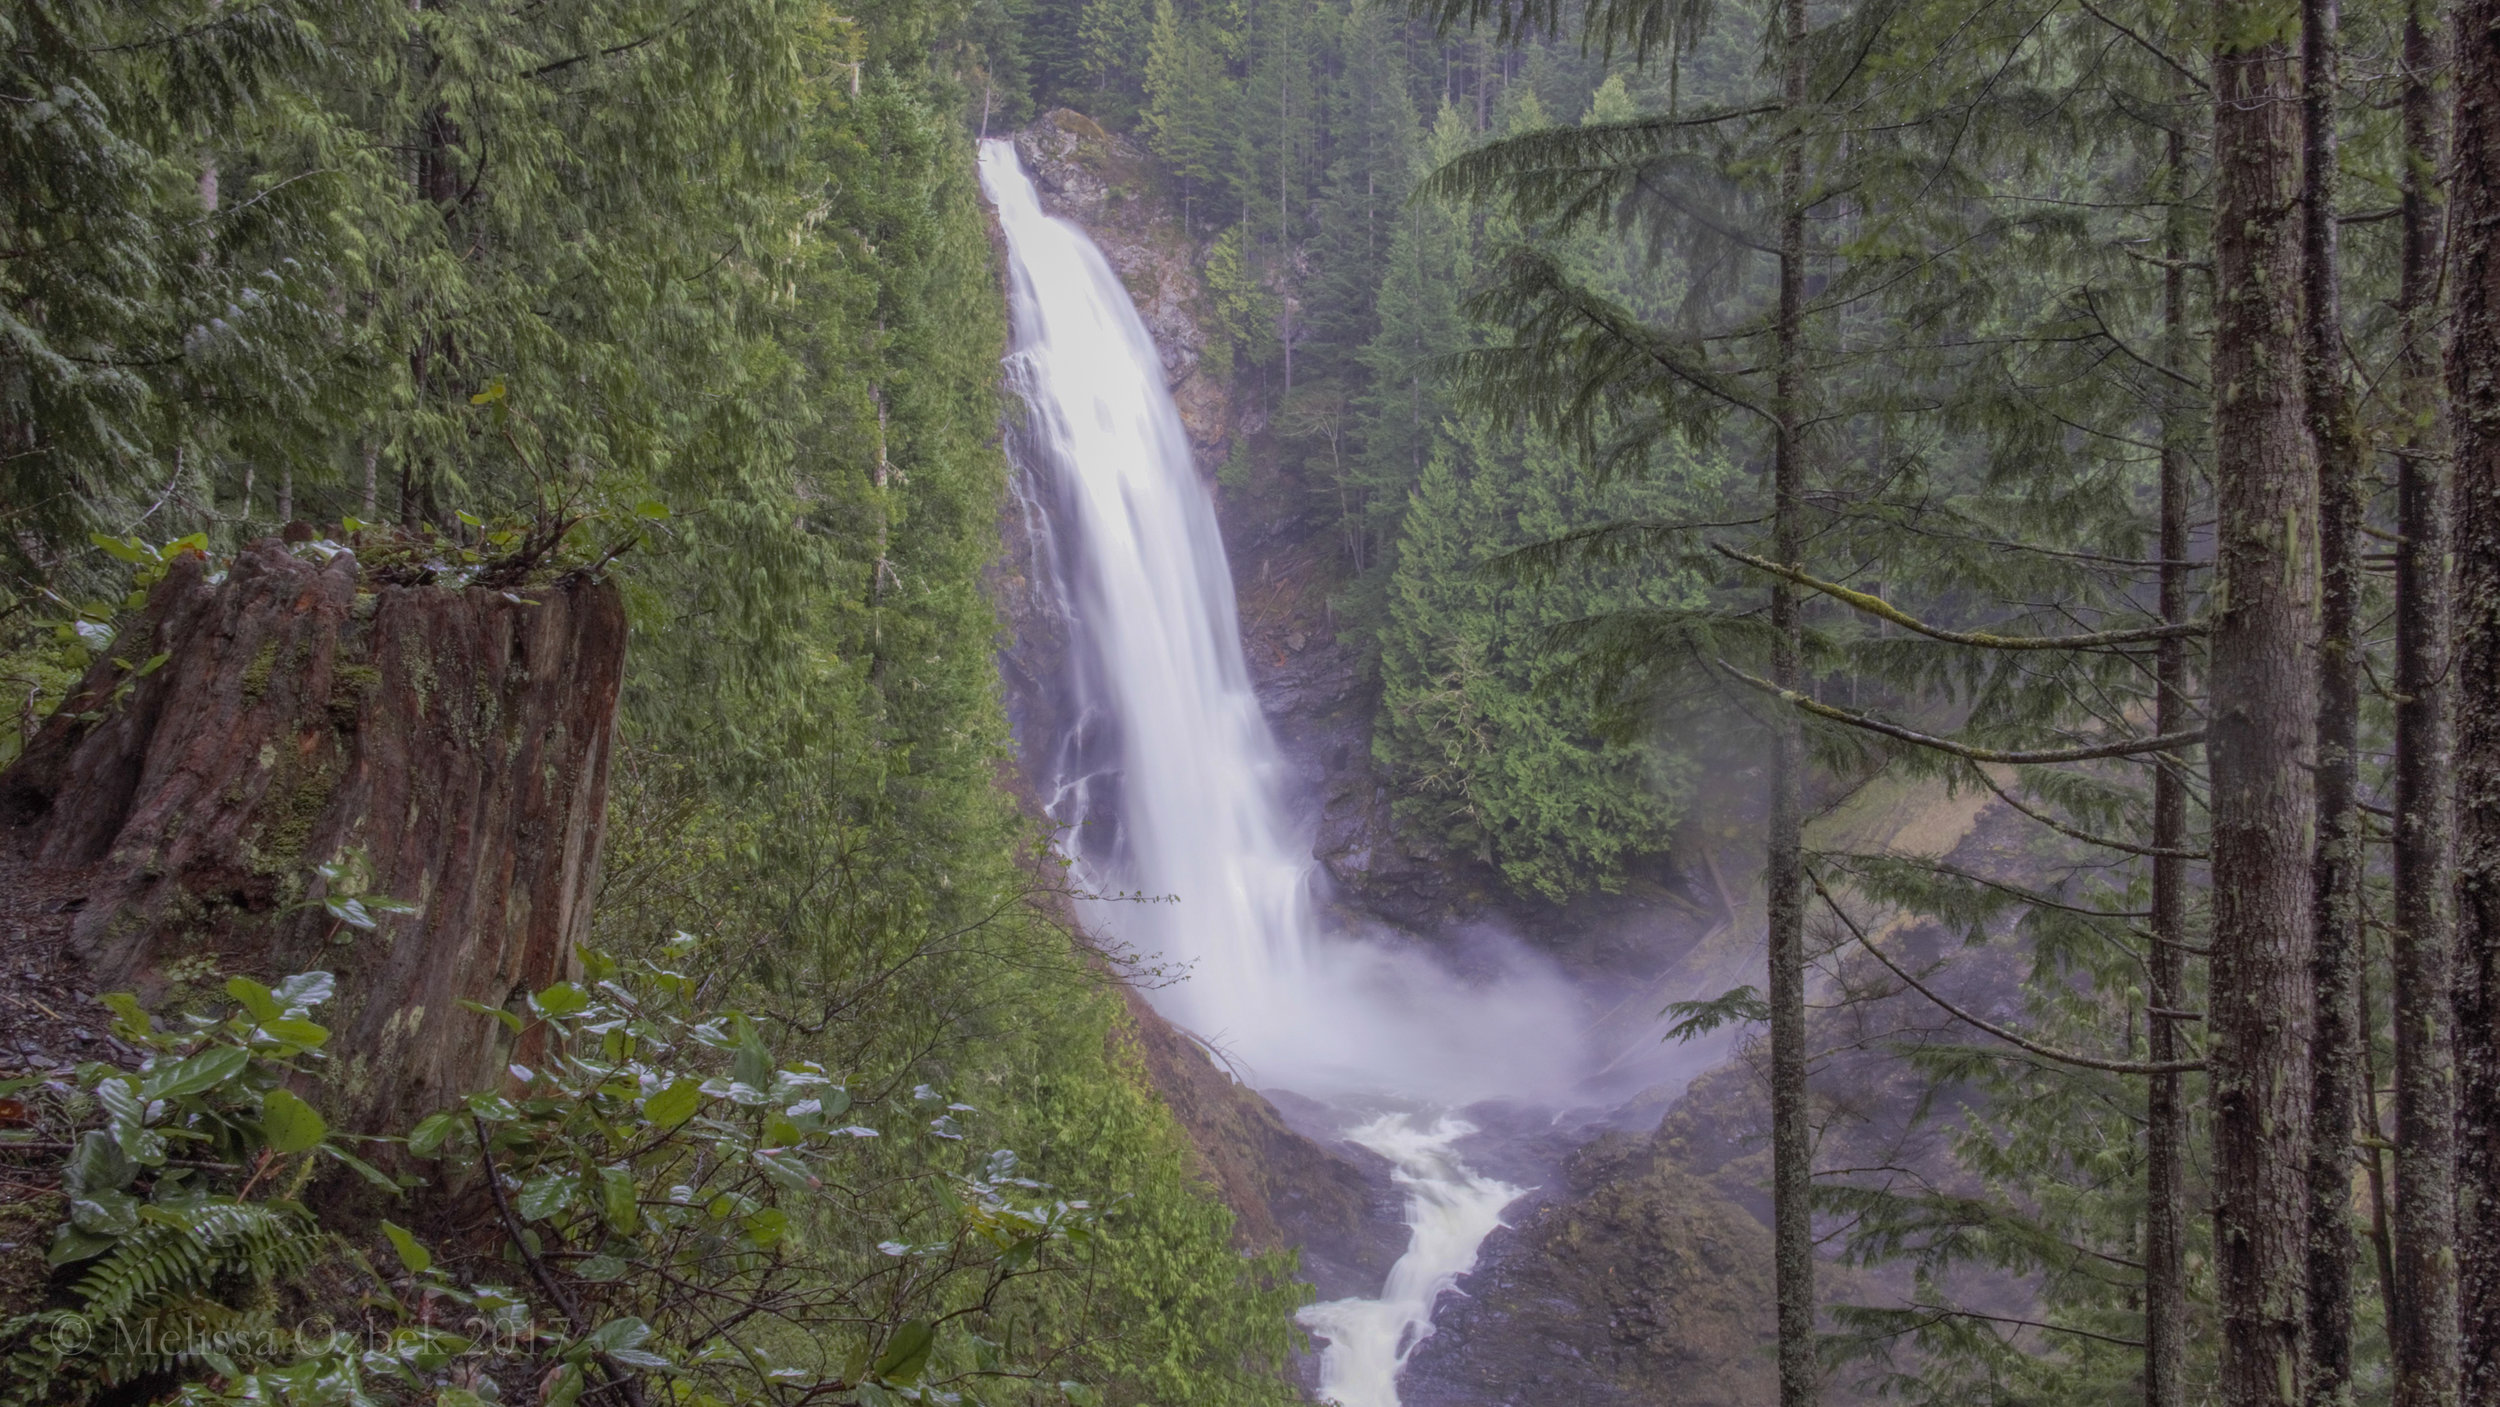 2. Woody Trail to Wallace Falls